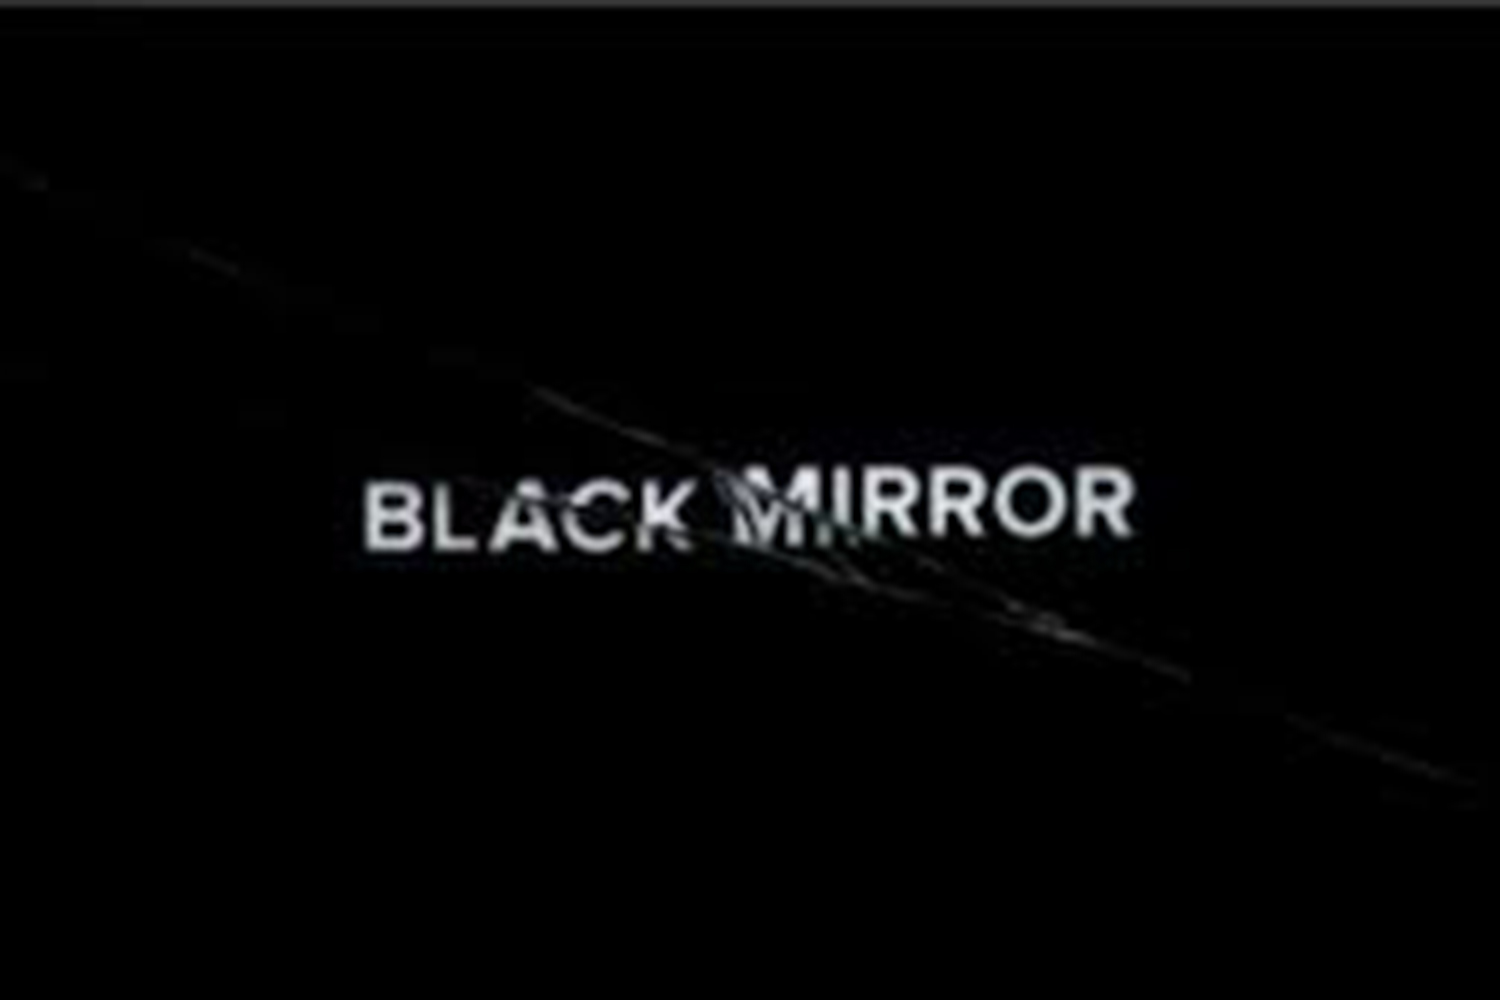 The Black Mirror has a lot of people talking.